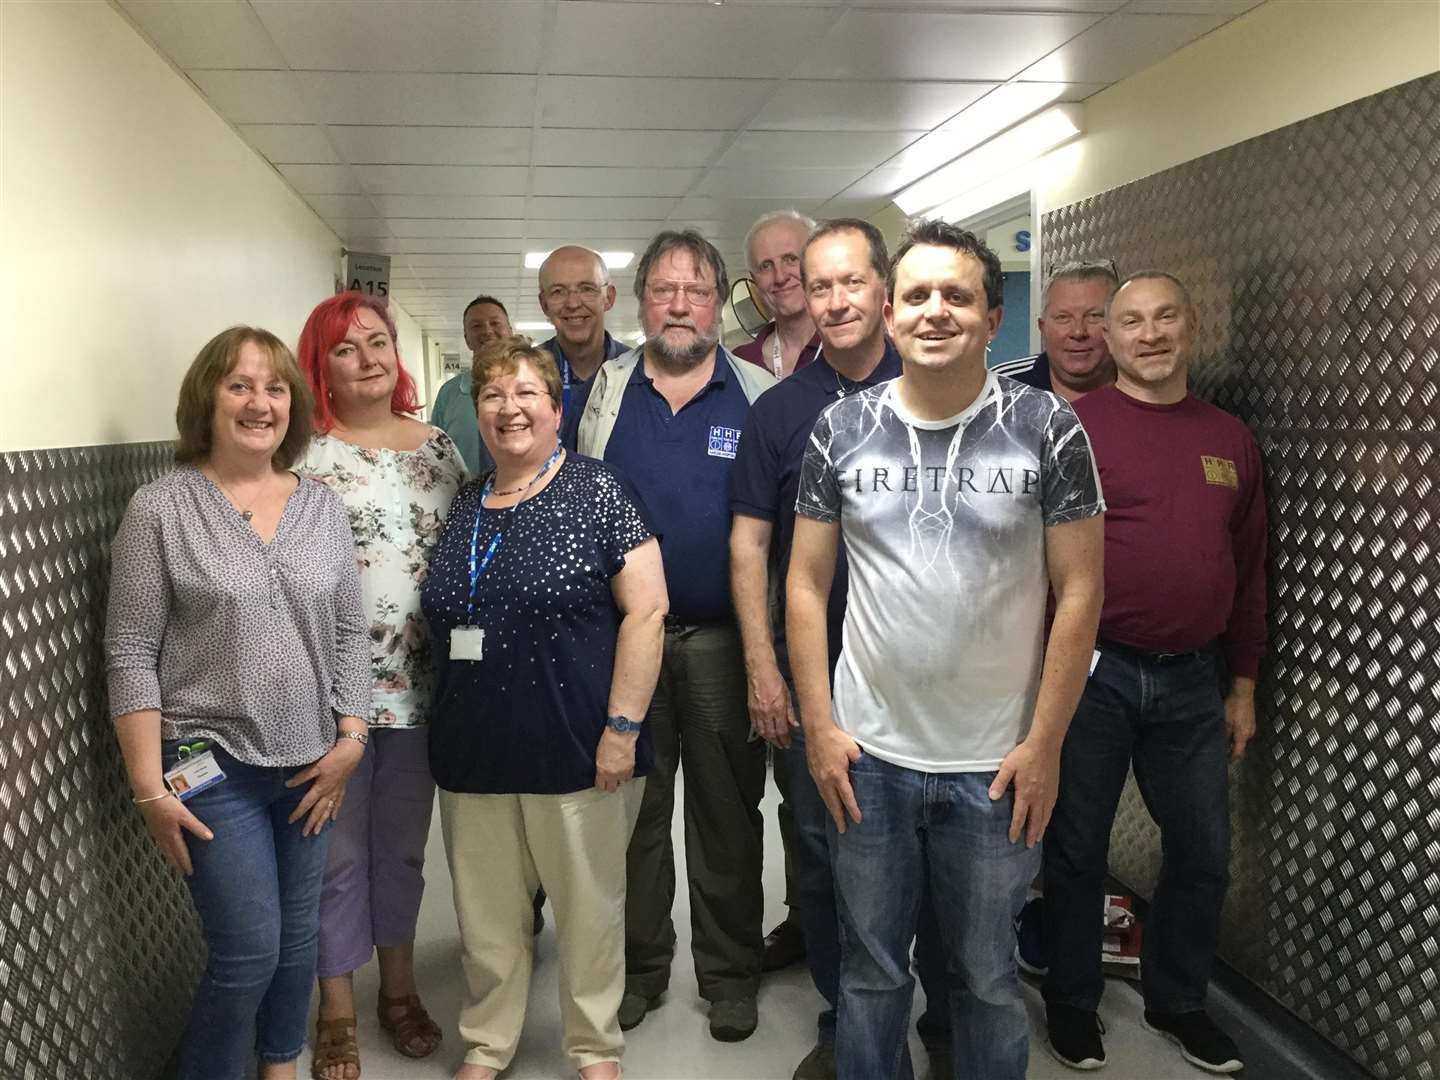 The Harlow Hospital Radio team at the time of recording their 2018 pantomime. Pictured L-R: Linda Ranger, Cosmic Stargirl (Lynne Andrews), Andy Magicman Meadows, Jane Bryson, Mark Ranger, Rob Furber, John Bryson, Peter Dodkin, Jonny Hayes, Kevin Bird, Marcos Kallou (6508692)